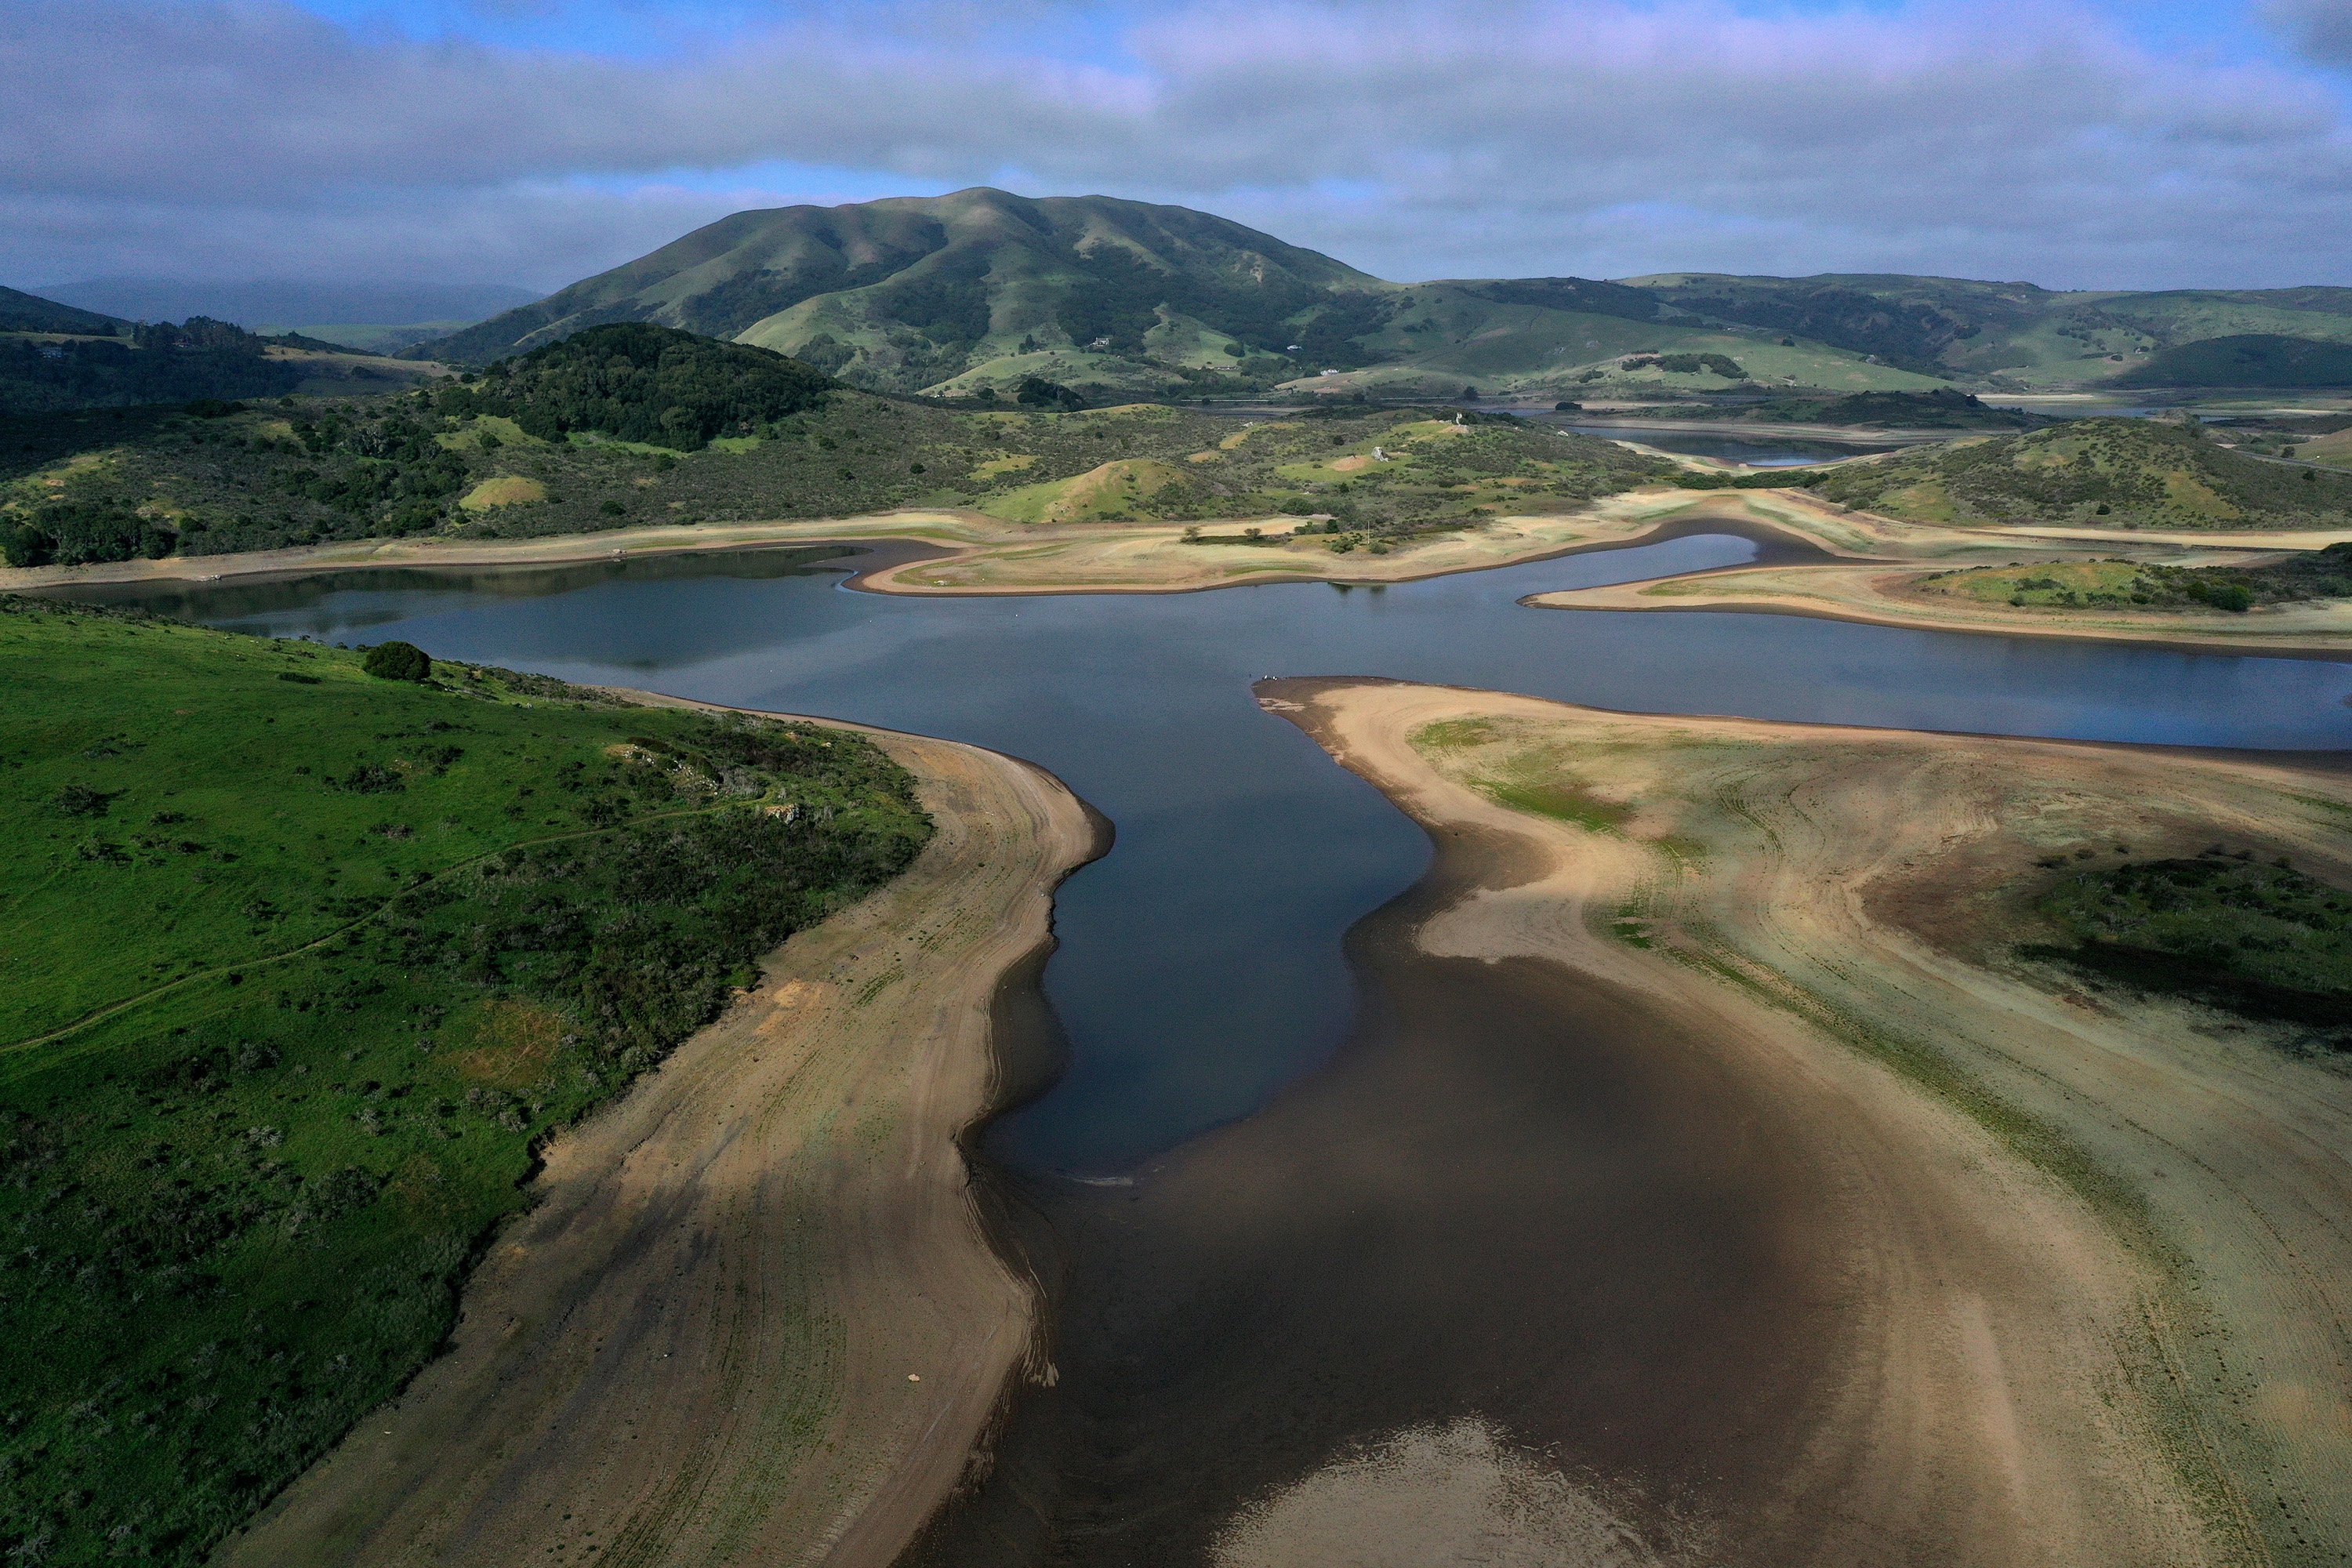 low water levels are visible at Nicasio Reservoir